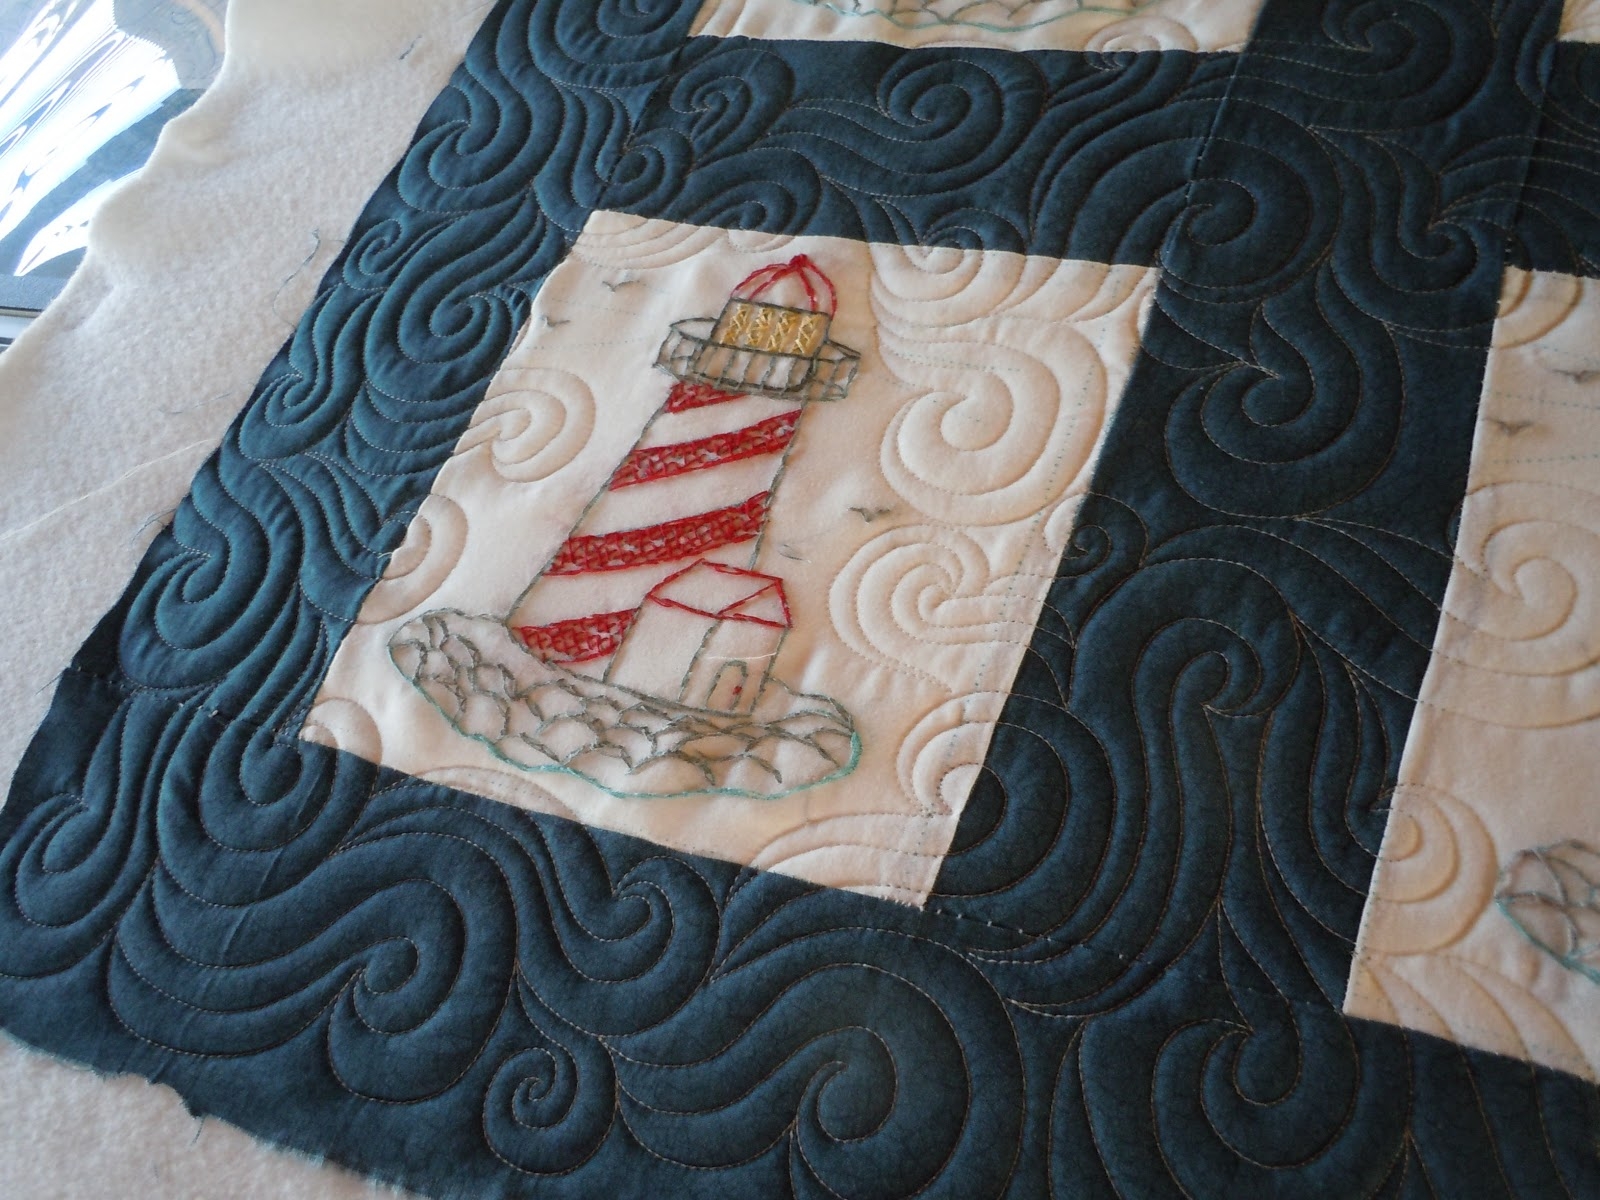 Applique archives carolyn hasenfratz design